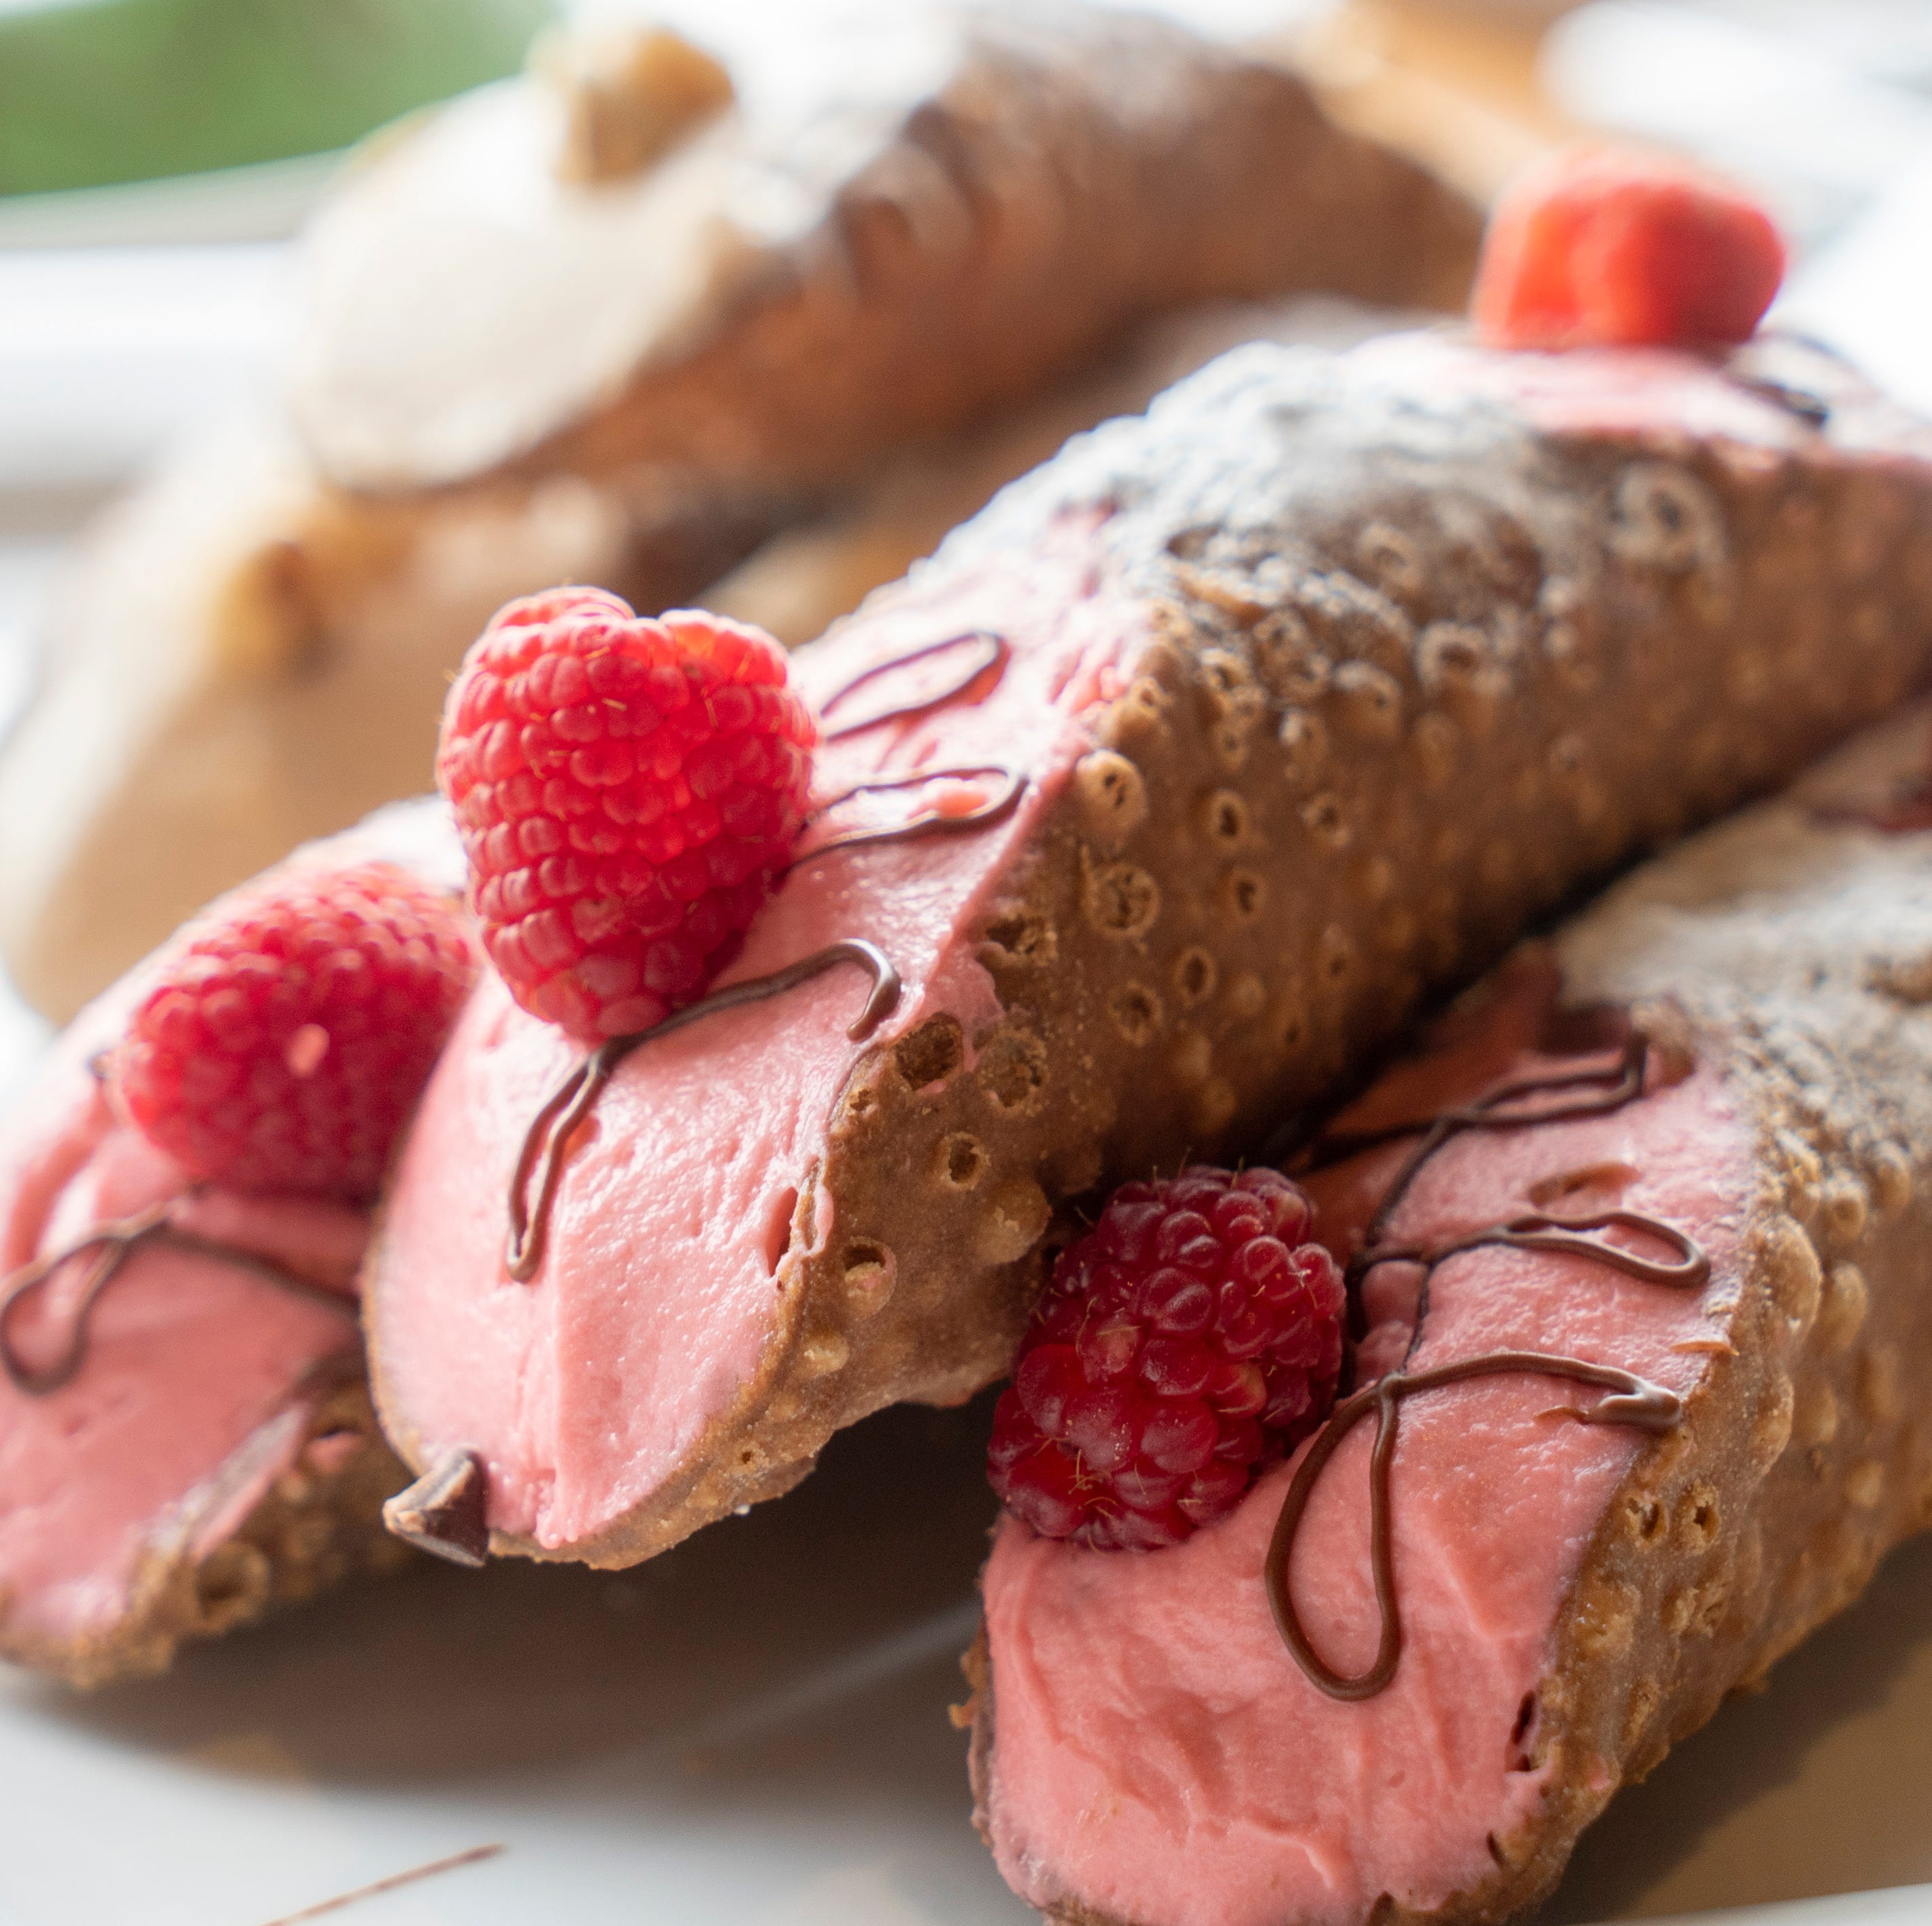 Sicilian Baker brings foot-long cannoli to Phoenix. Here's how to get a free mini one